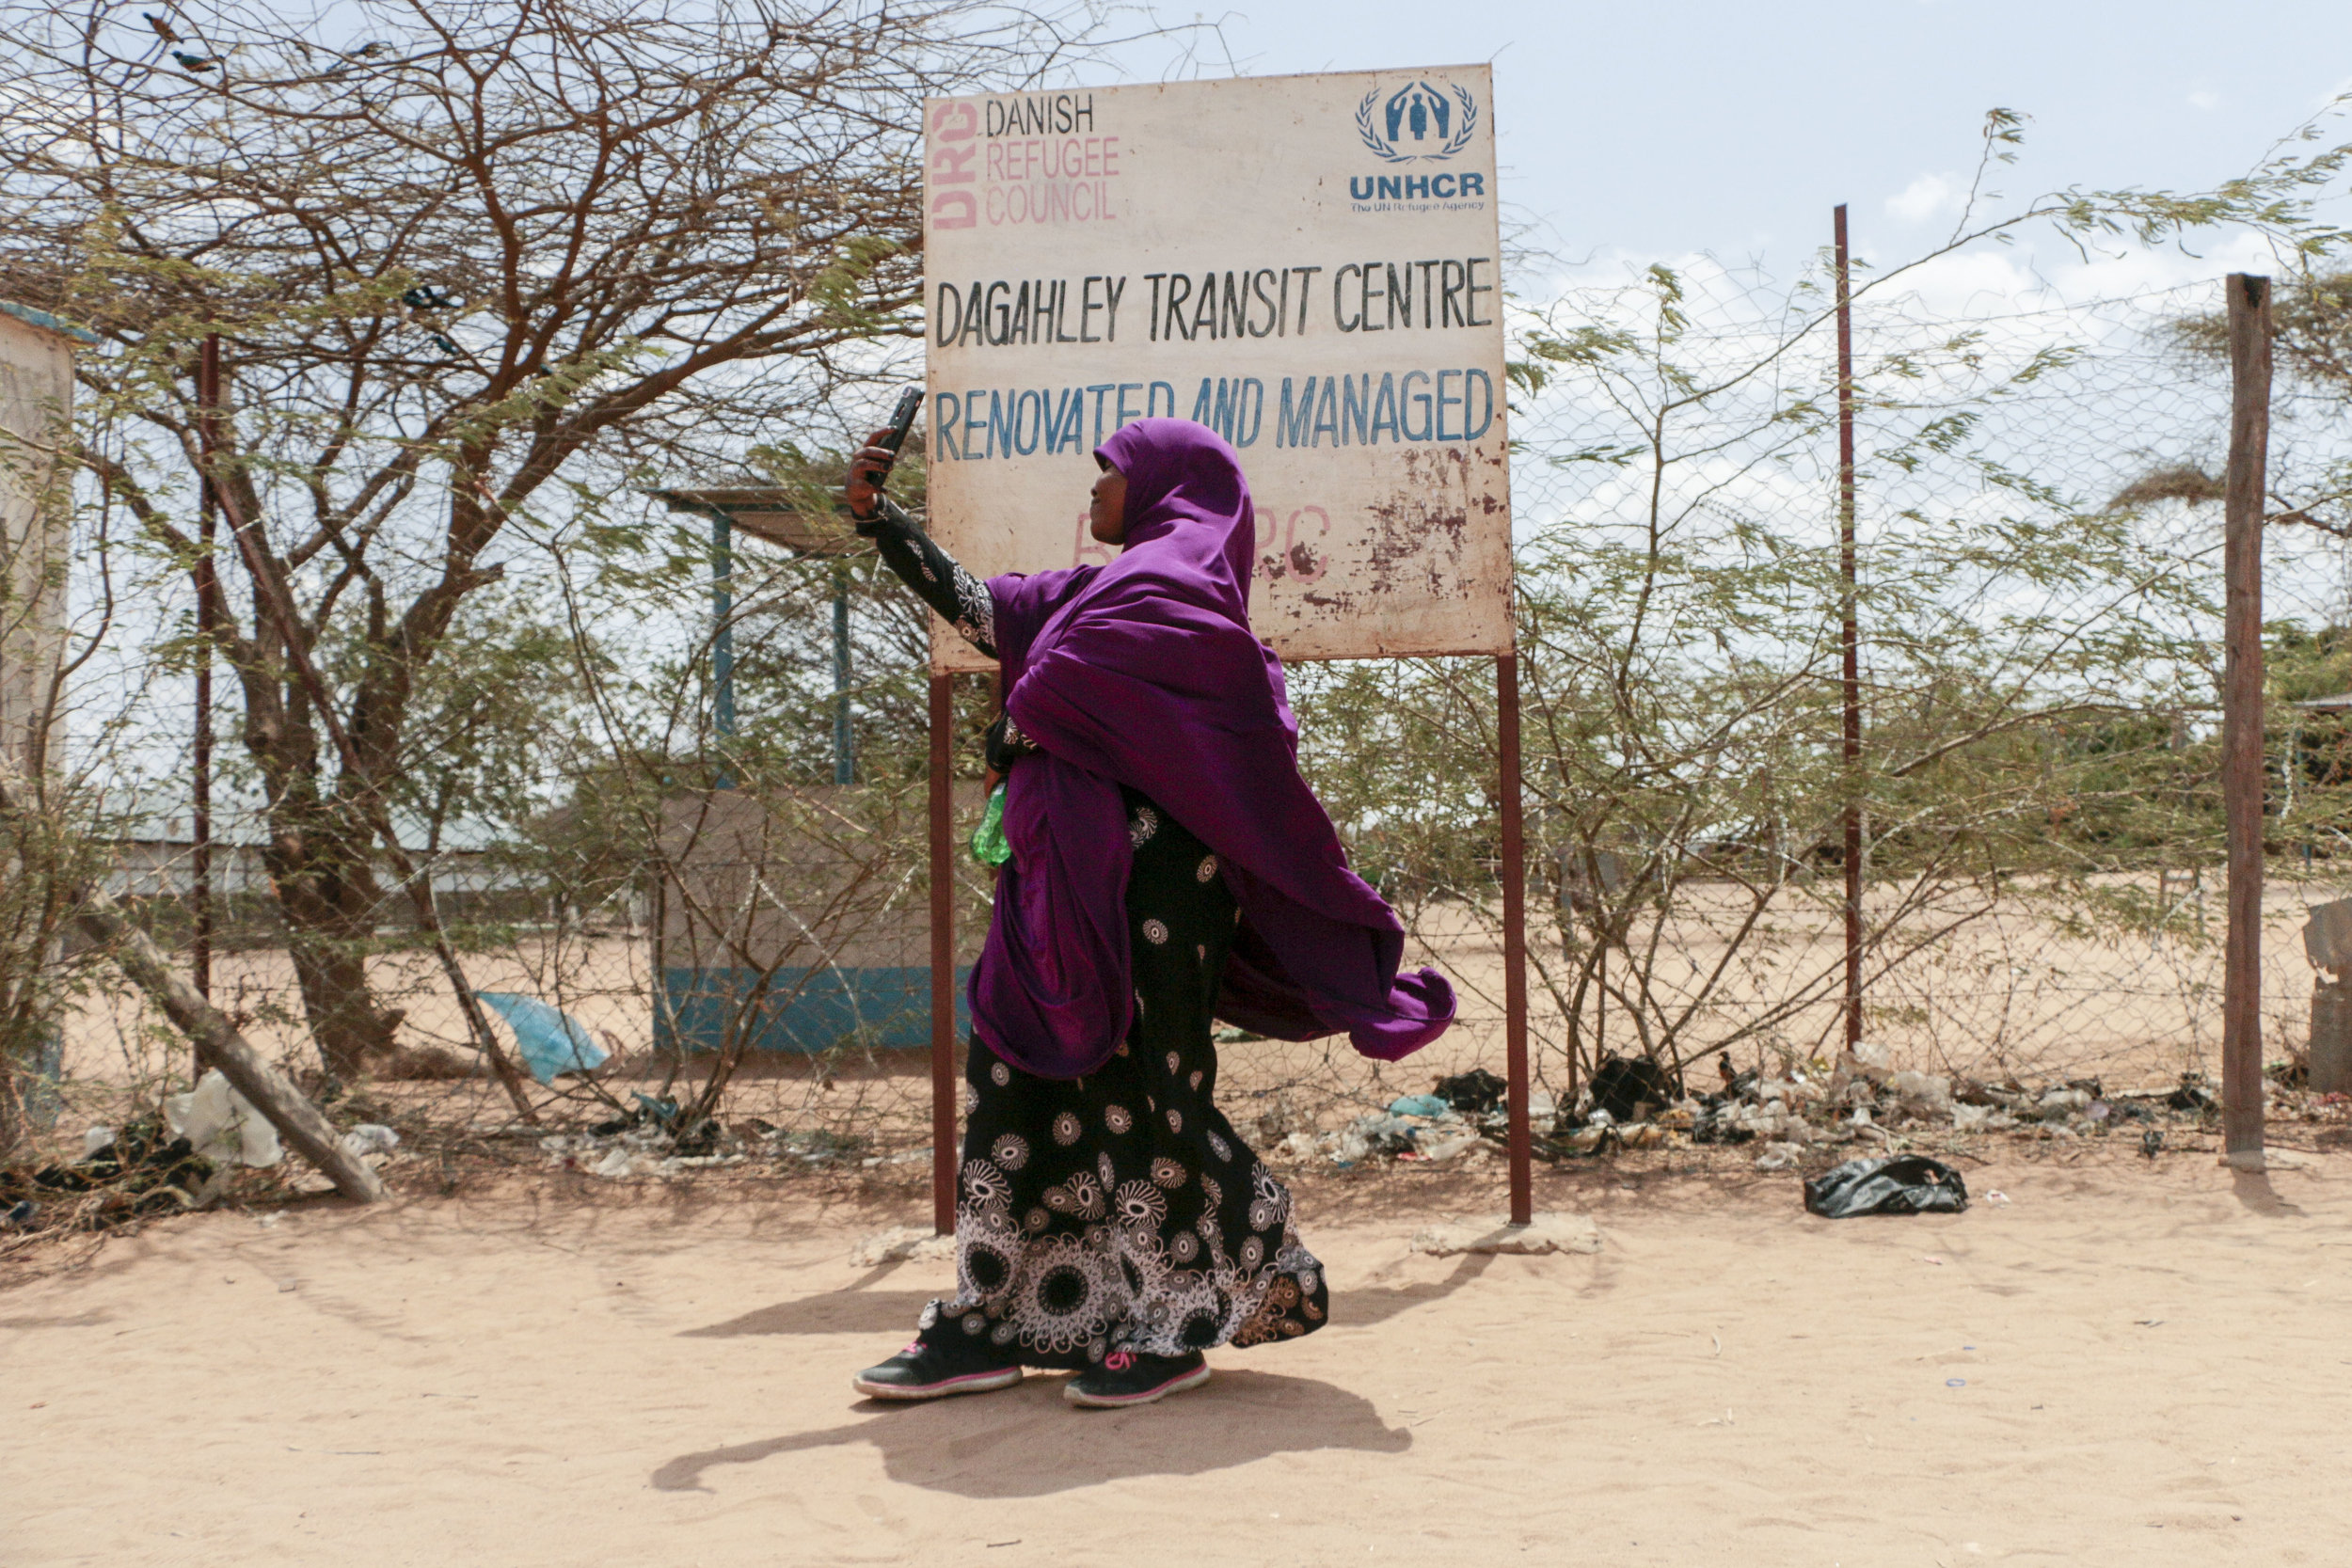 Hamdi Kosar takes a selfie with her phone in front of the Dagahaley Transit Centre sign Aug. 19, 2019 at the Dagahaley Refugee Camp in Dadaab, Kenya. Kosar, 21, was born at the refugee camp and lived there throughout most of her pre-teen years. This is the first time she has been back to the camp in almost a decade.